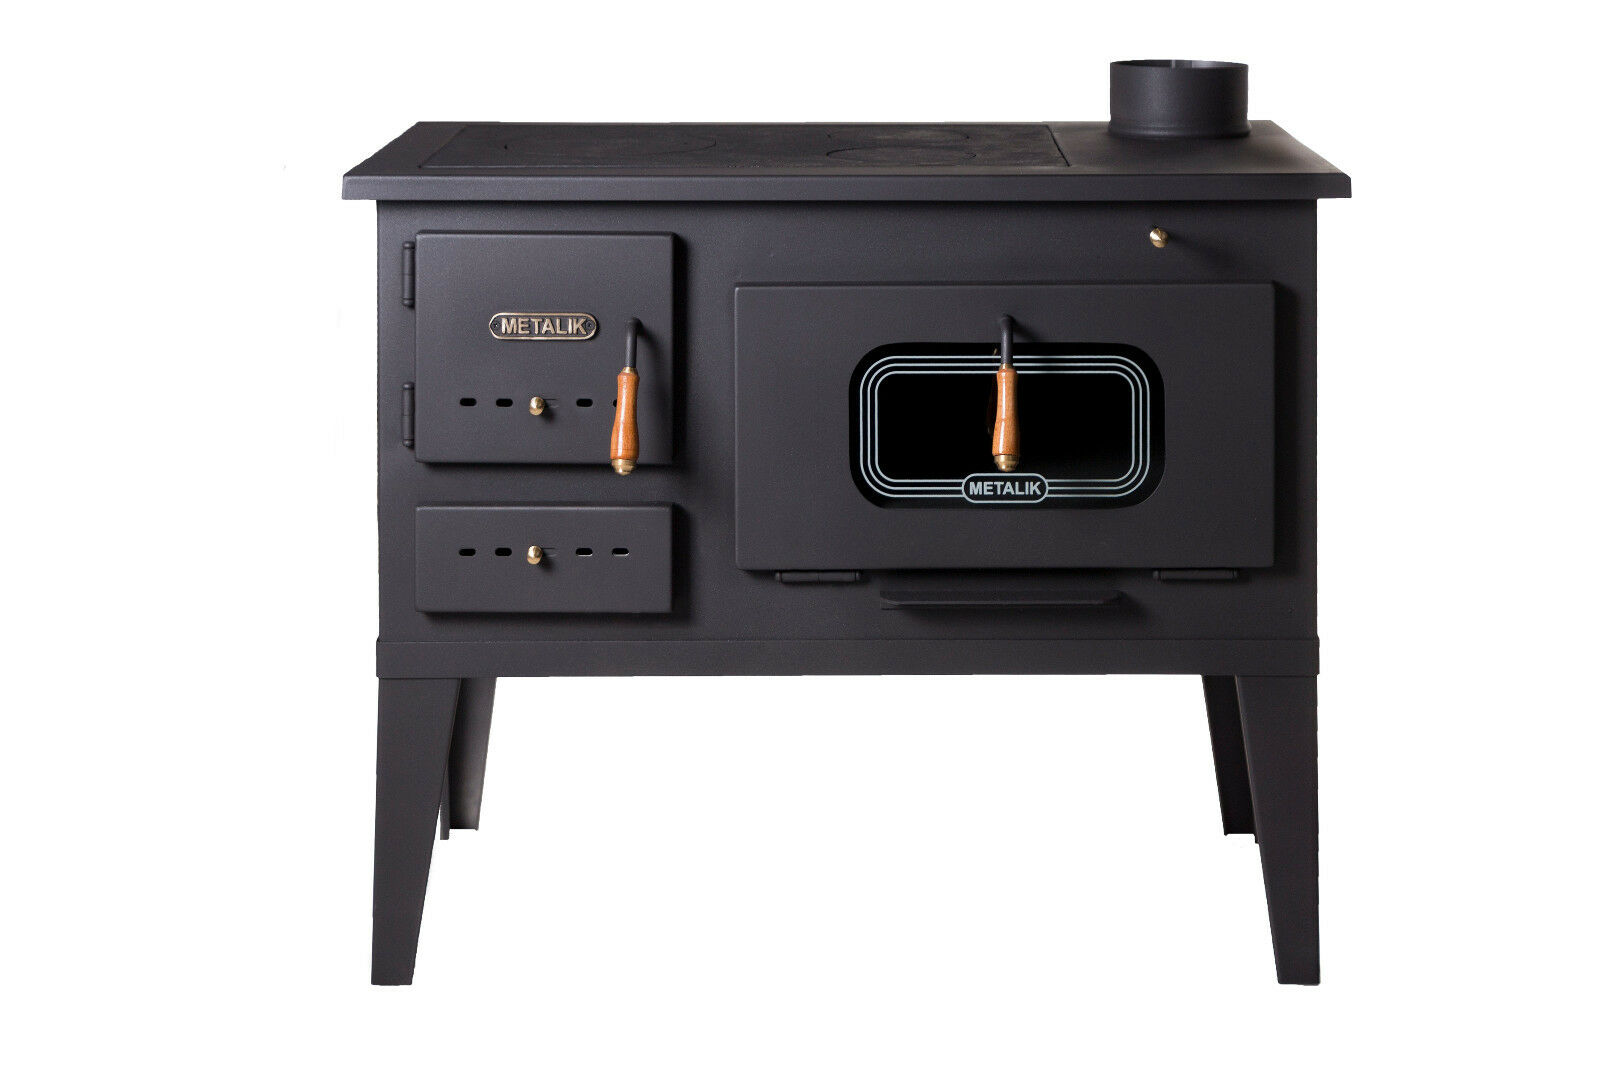 Holzherd Küchenofen Details About Wood Burning Cooking Stove Cast Iron Top Log Burner Oven 8 12 Kw Heating Power